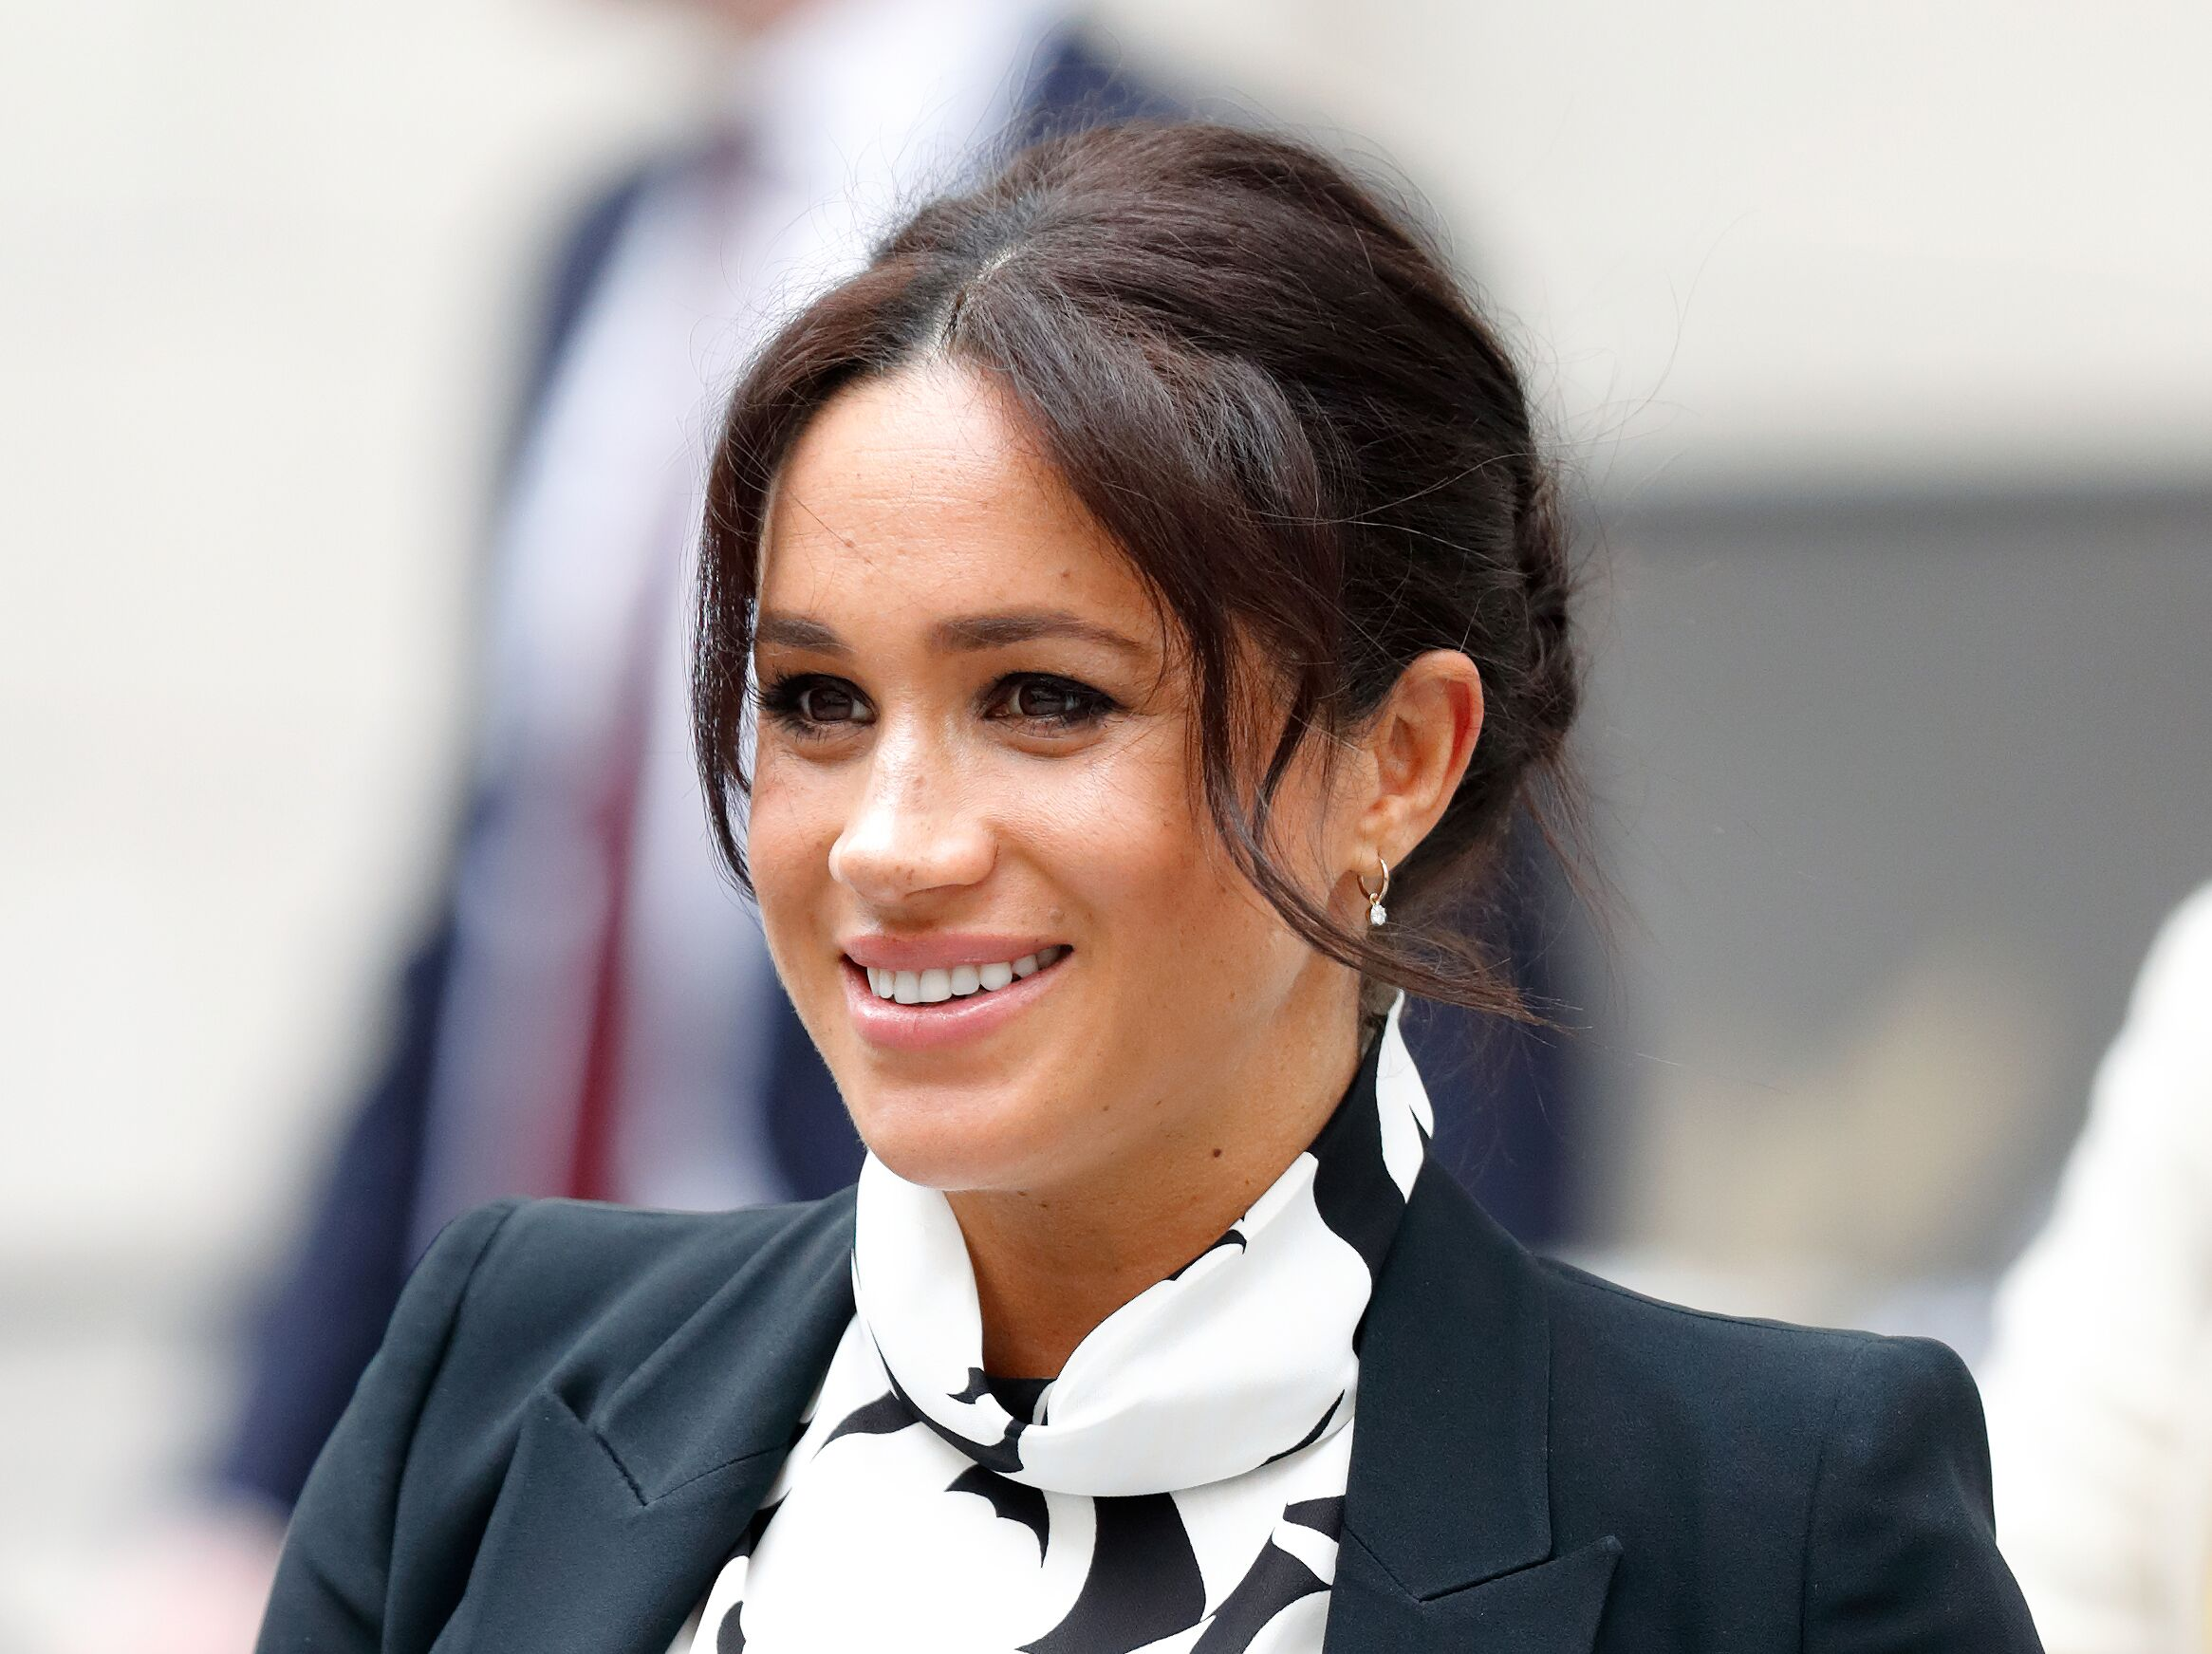 Duchess of Sussex attends a panel discussion, convened by The Queen's Commonwealth Trust, to mark International Women's Day at King's College London | Photo: Getty Images